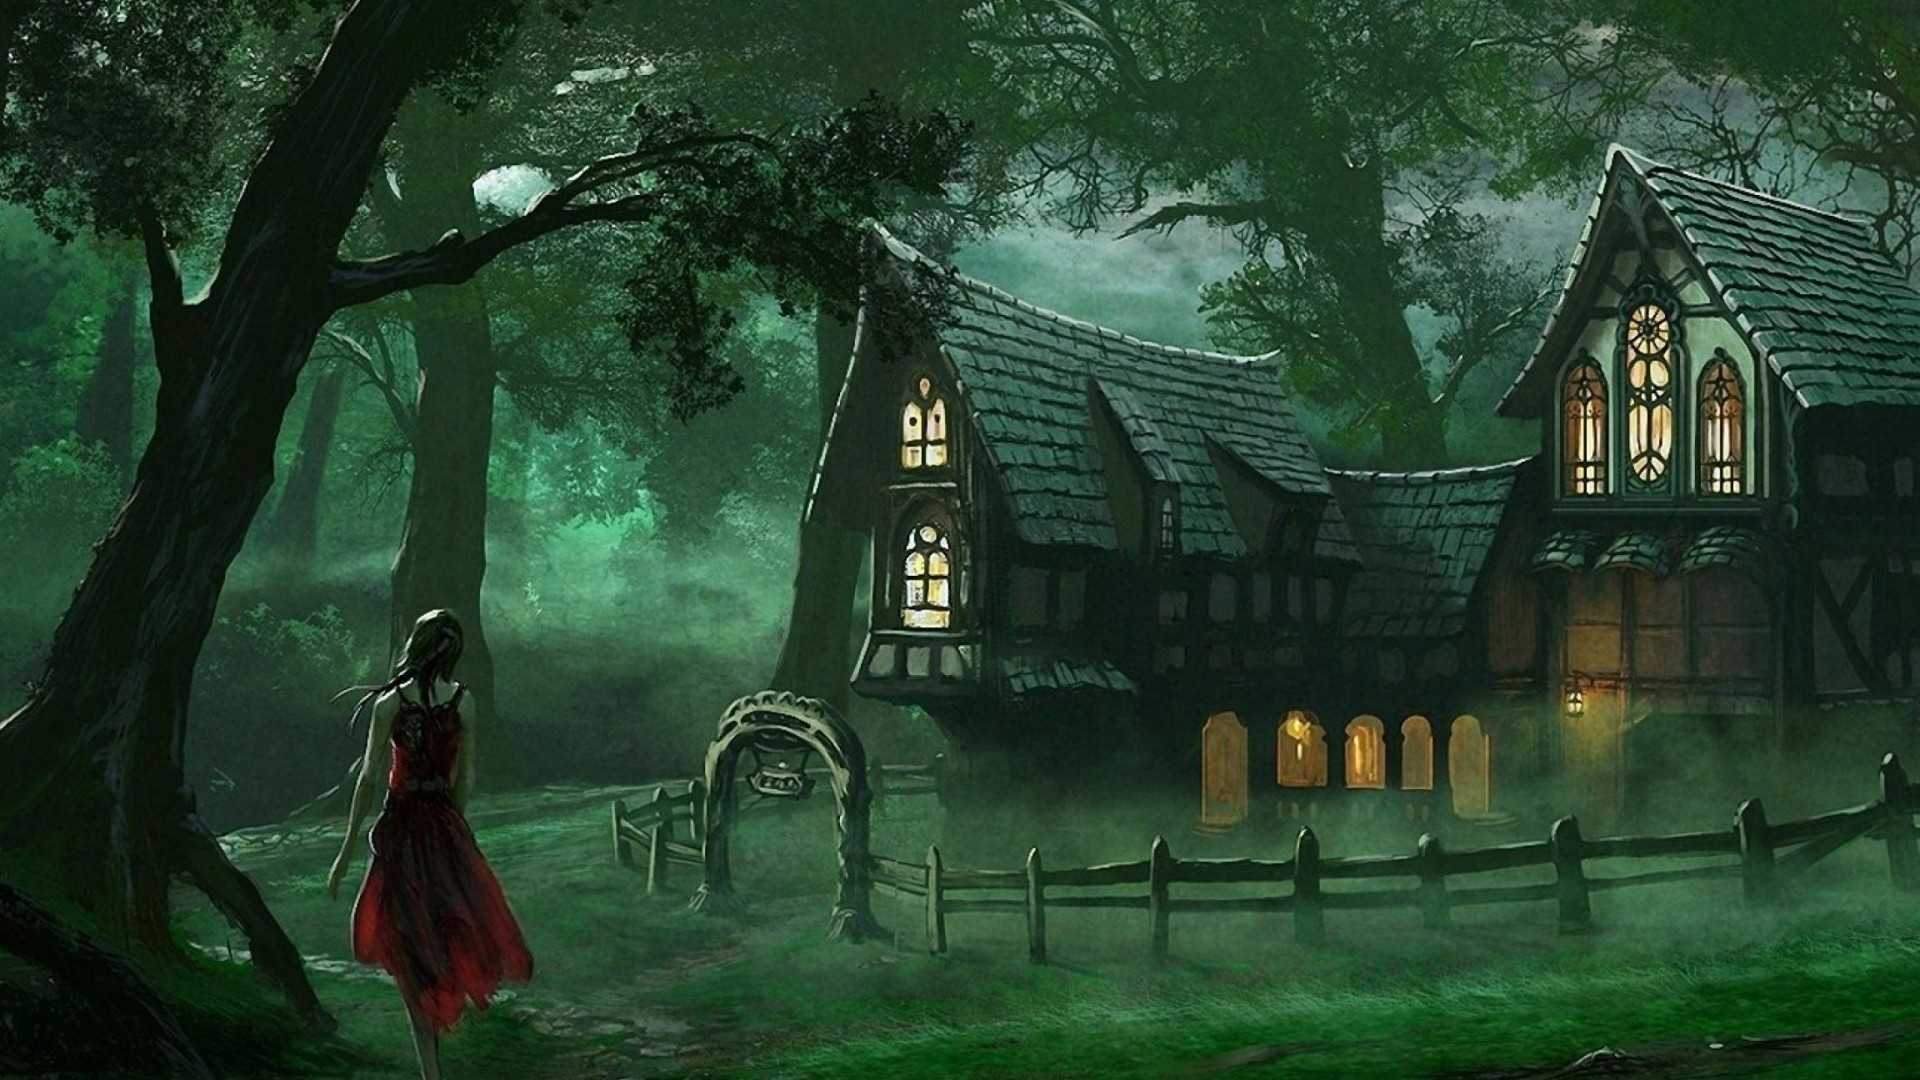 1920x1080 Spooky House Fantasy Forest wallpaper HD [1920 1080]